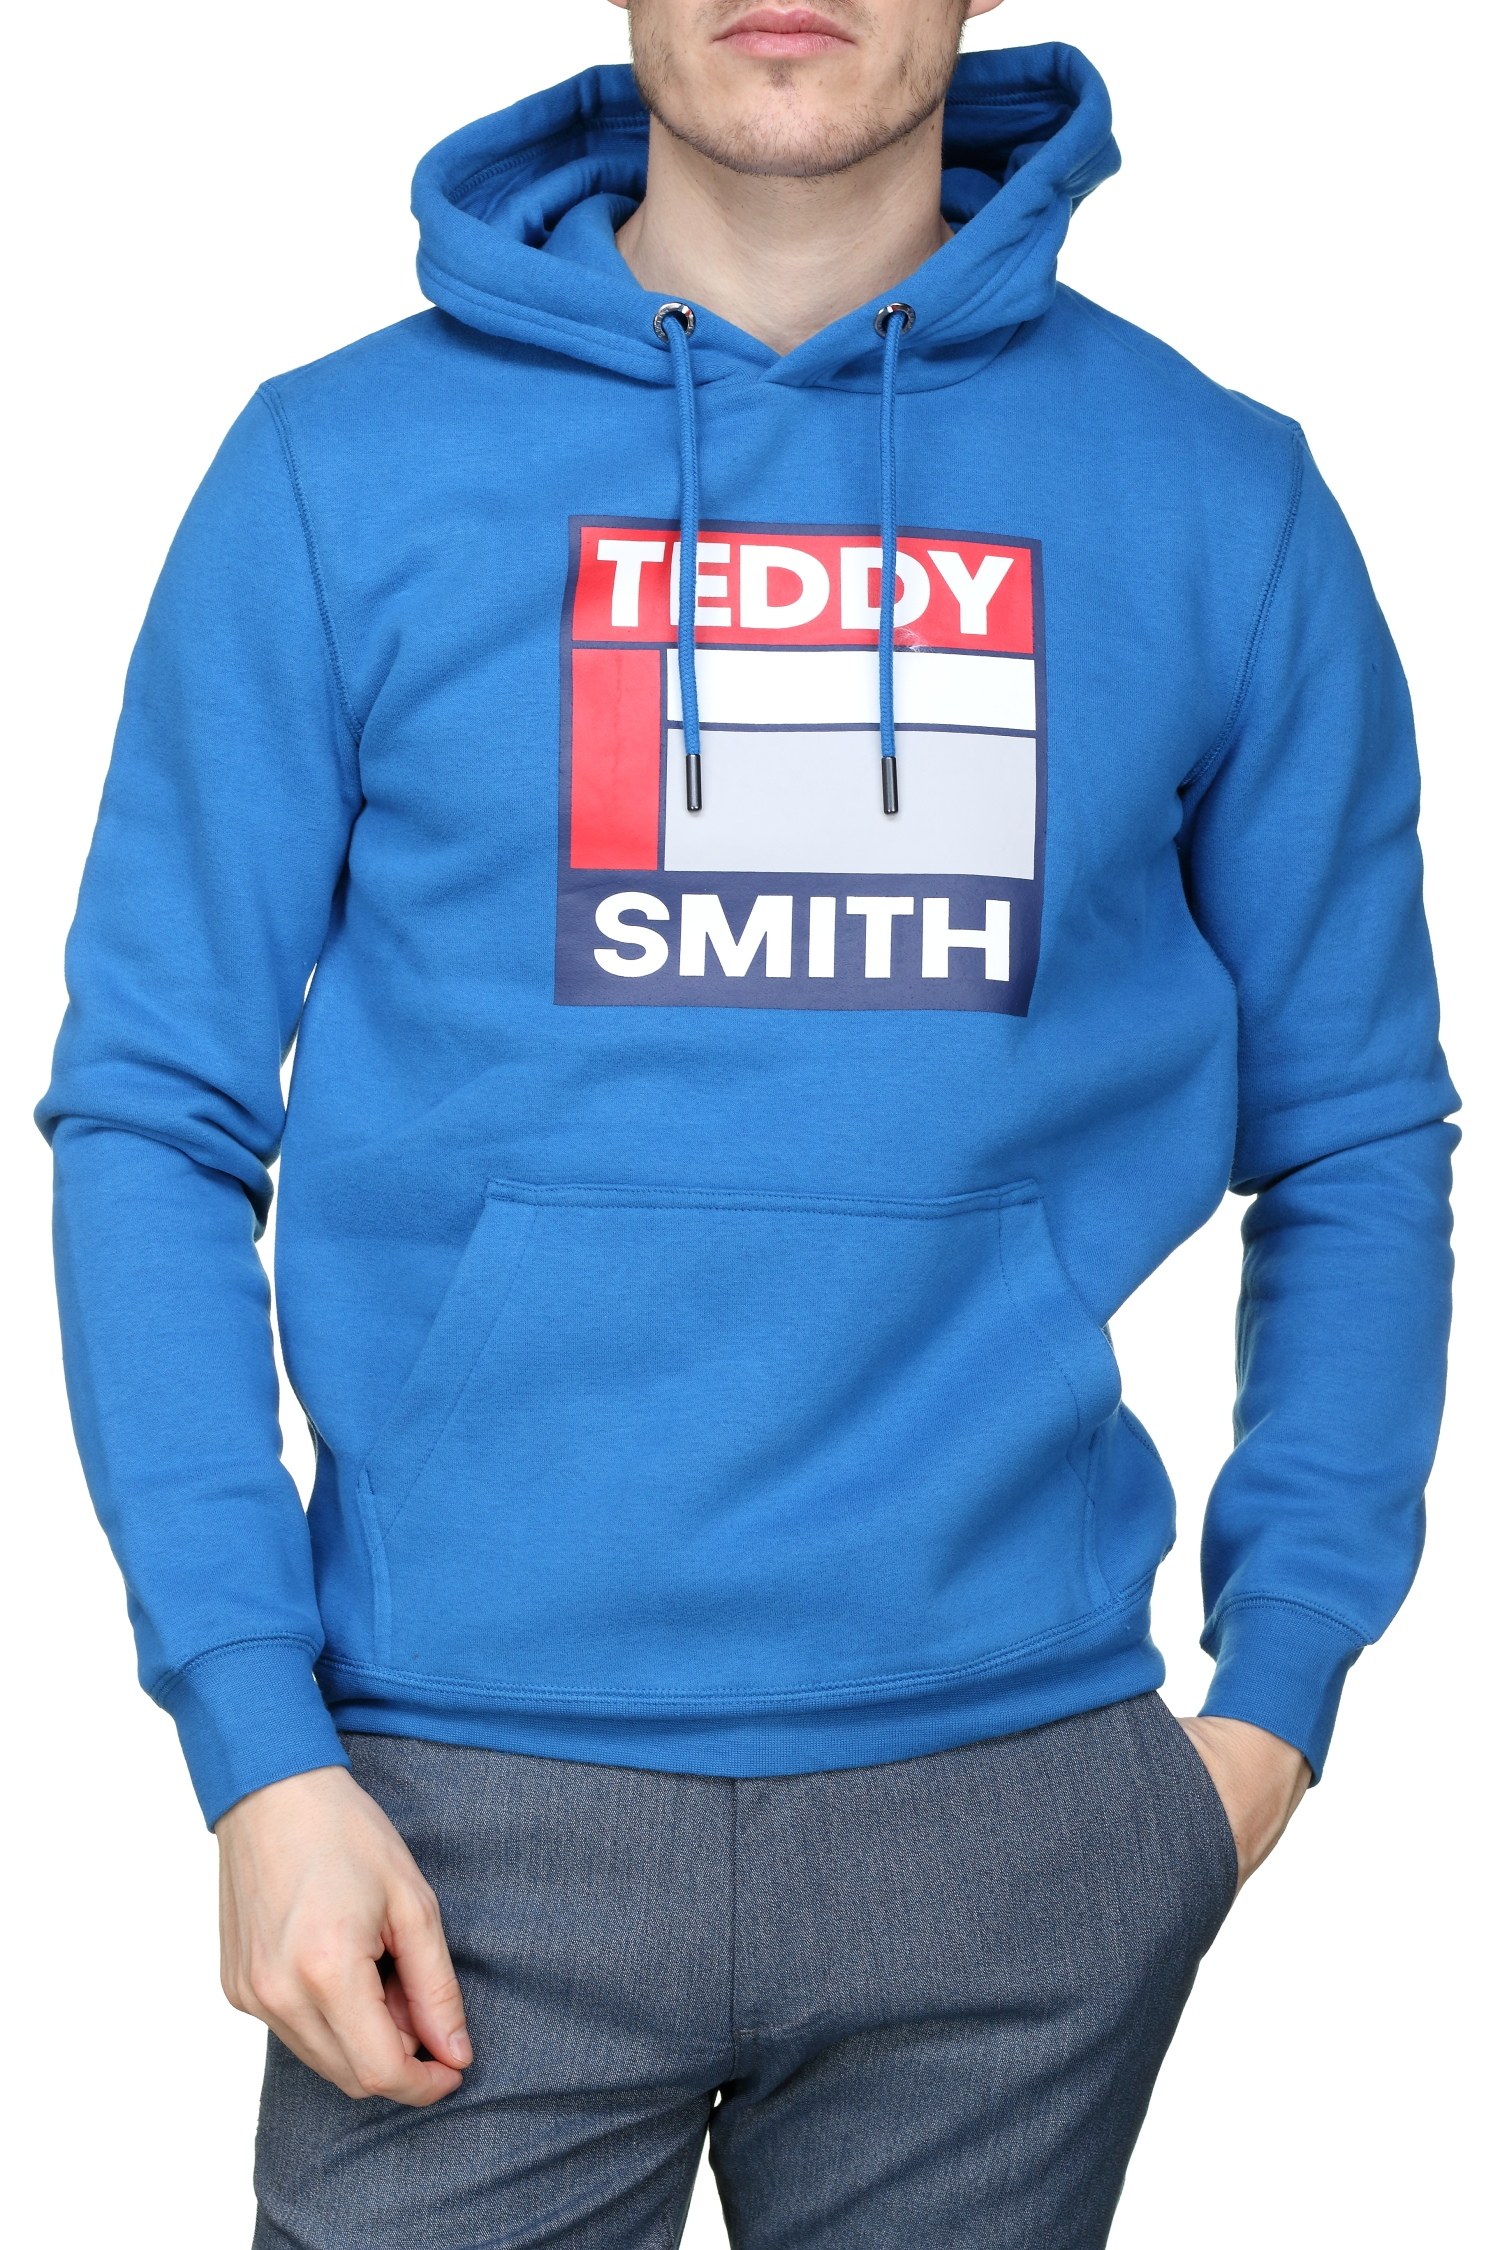 http://www.leadermode.com/174590/teddy-smith-sacot-hoody-10813803d-328b-snorkel-blue.jpg